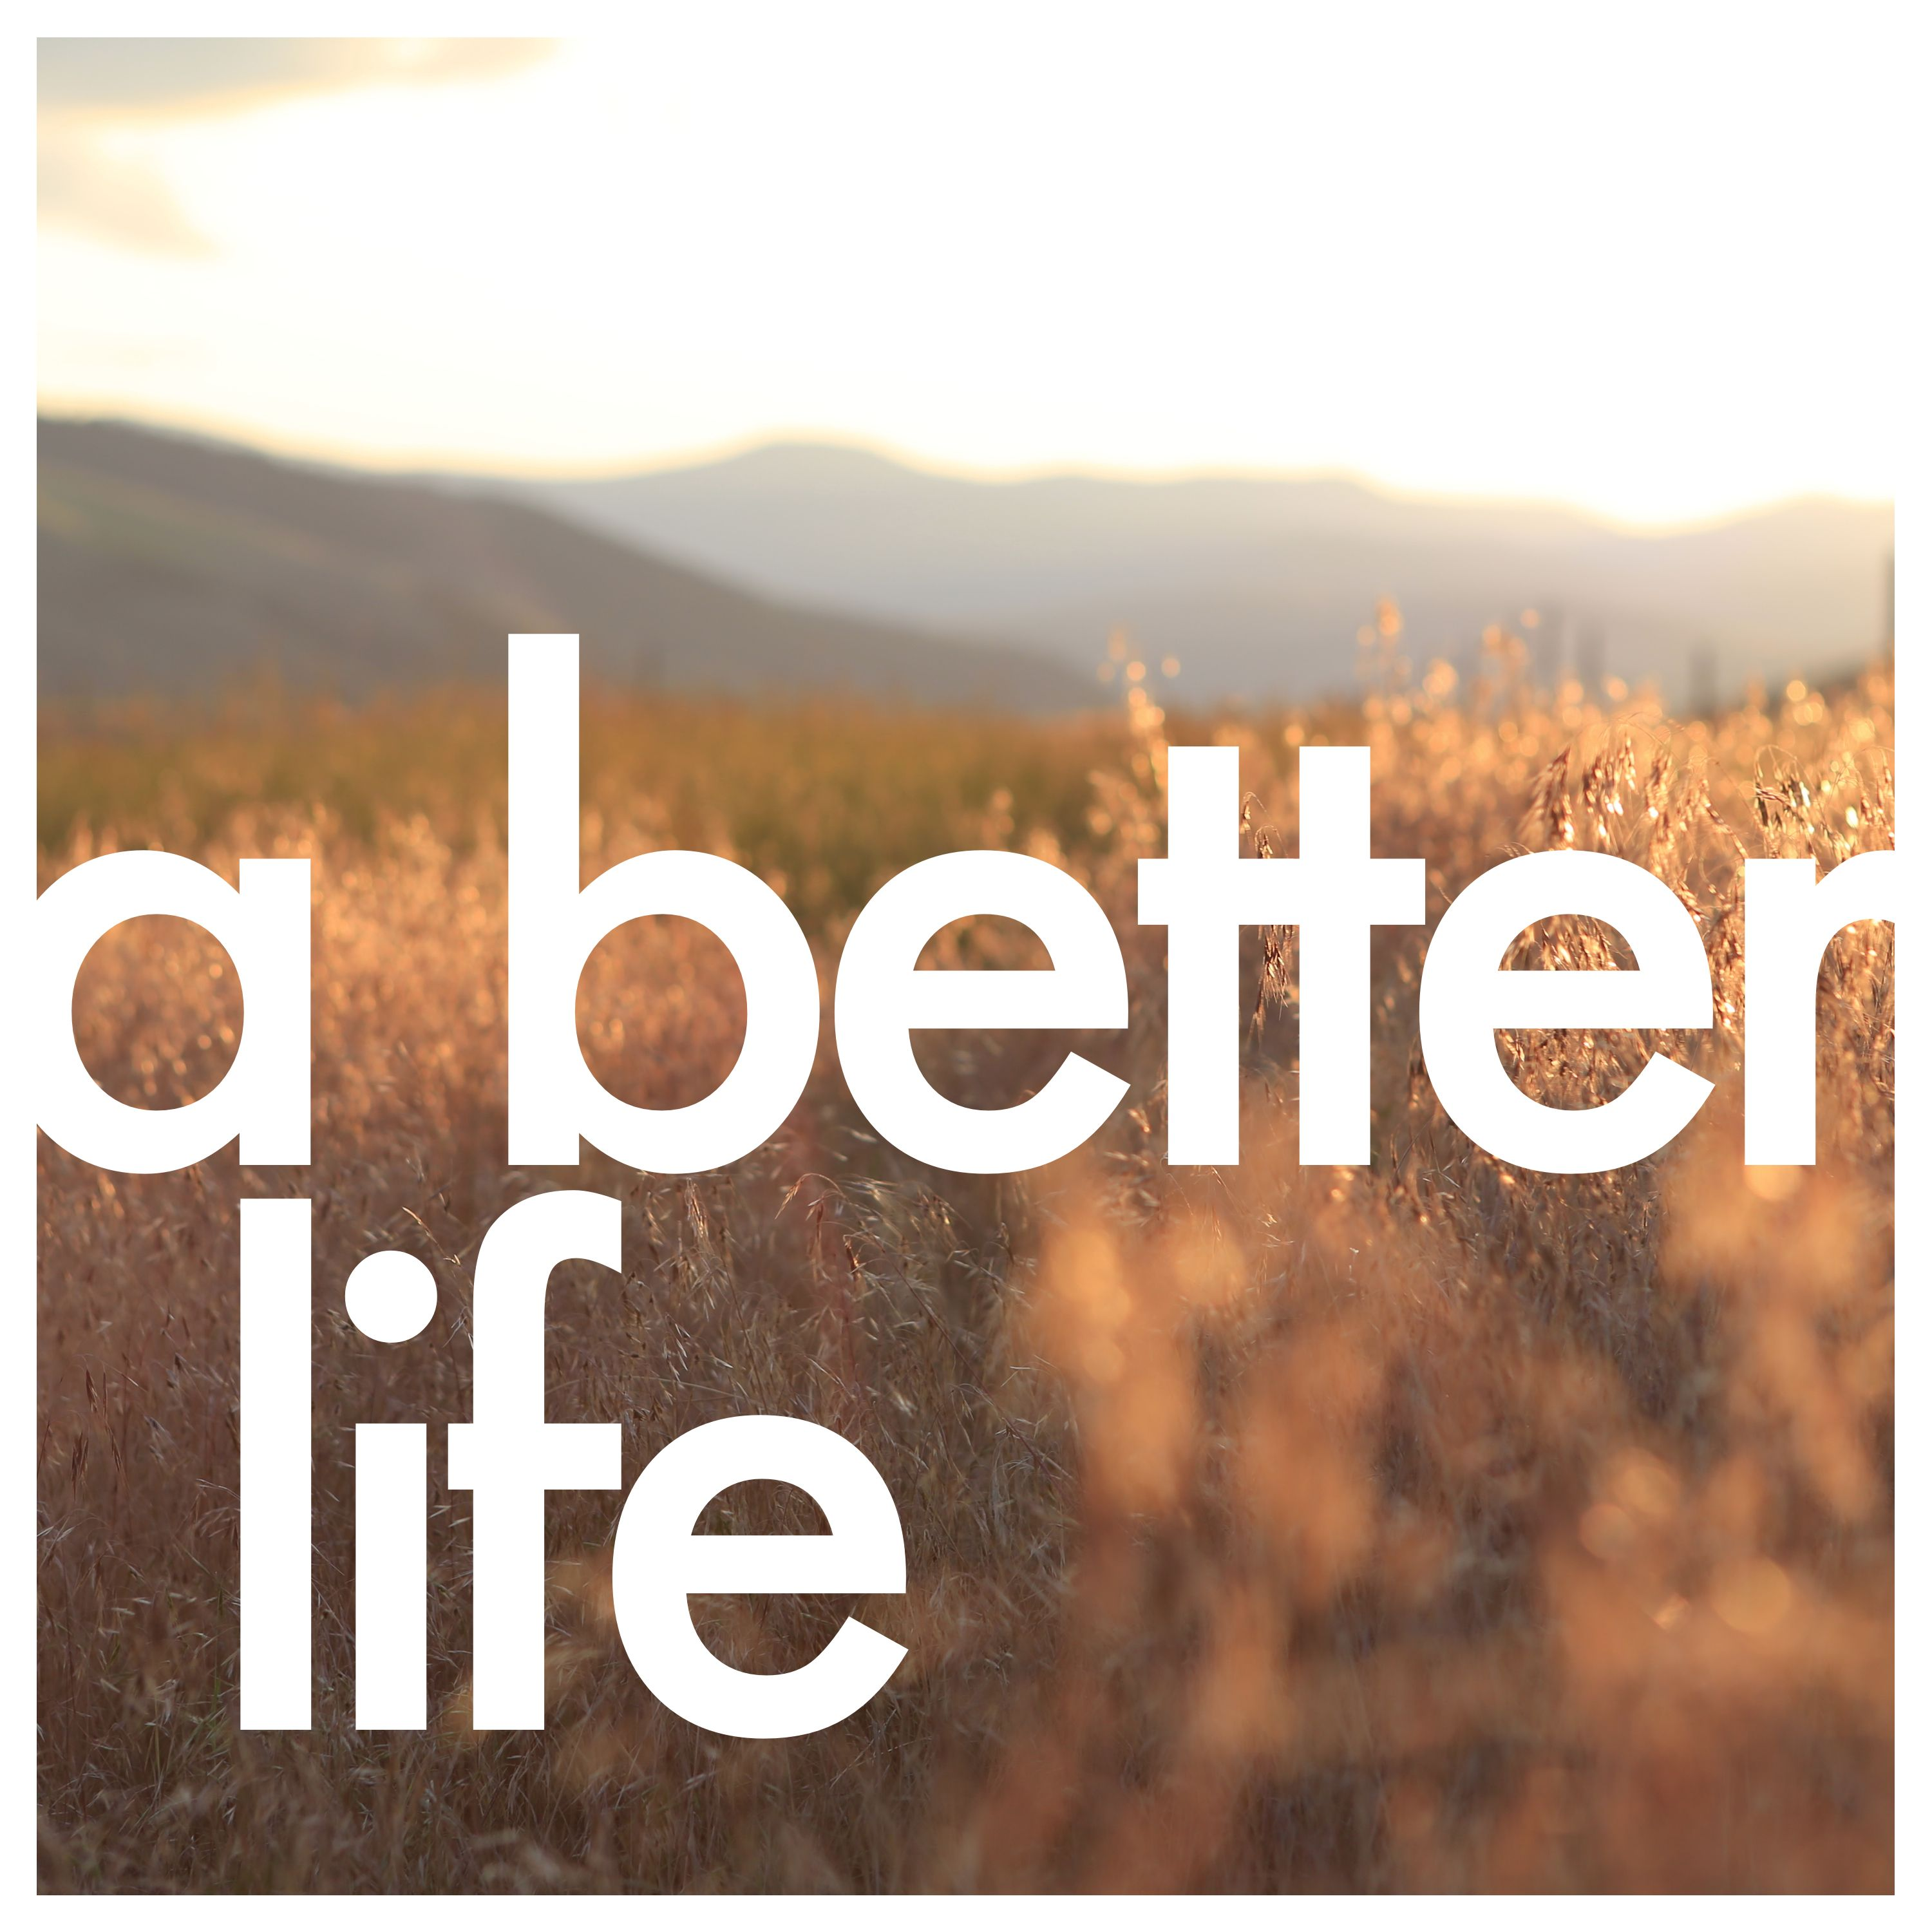 Better forex better life do you agree